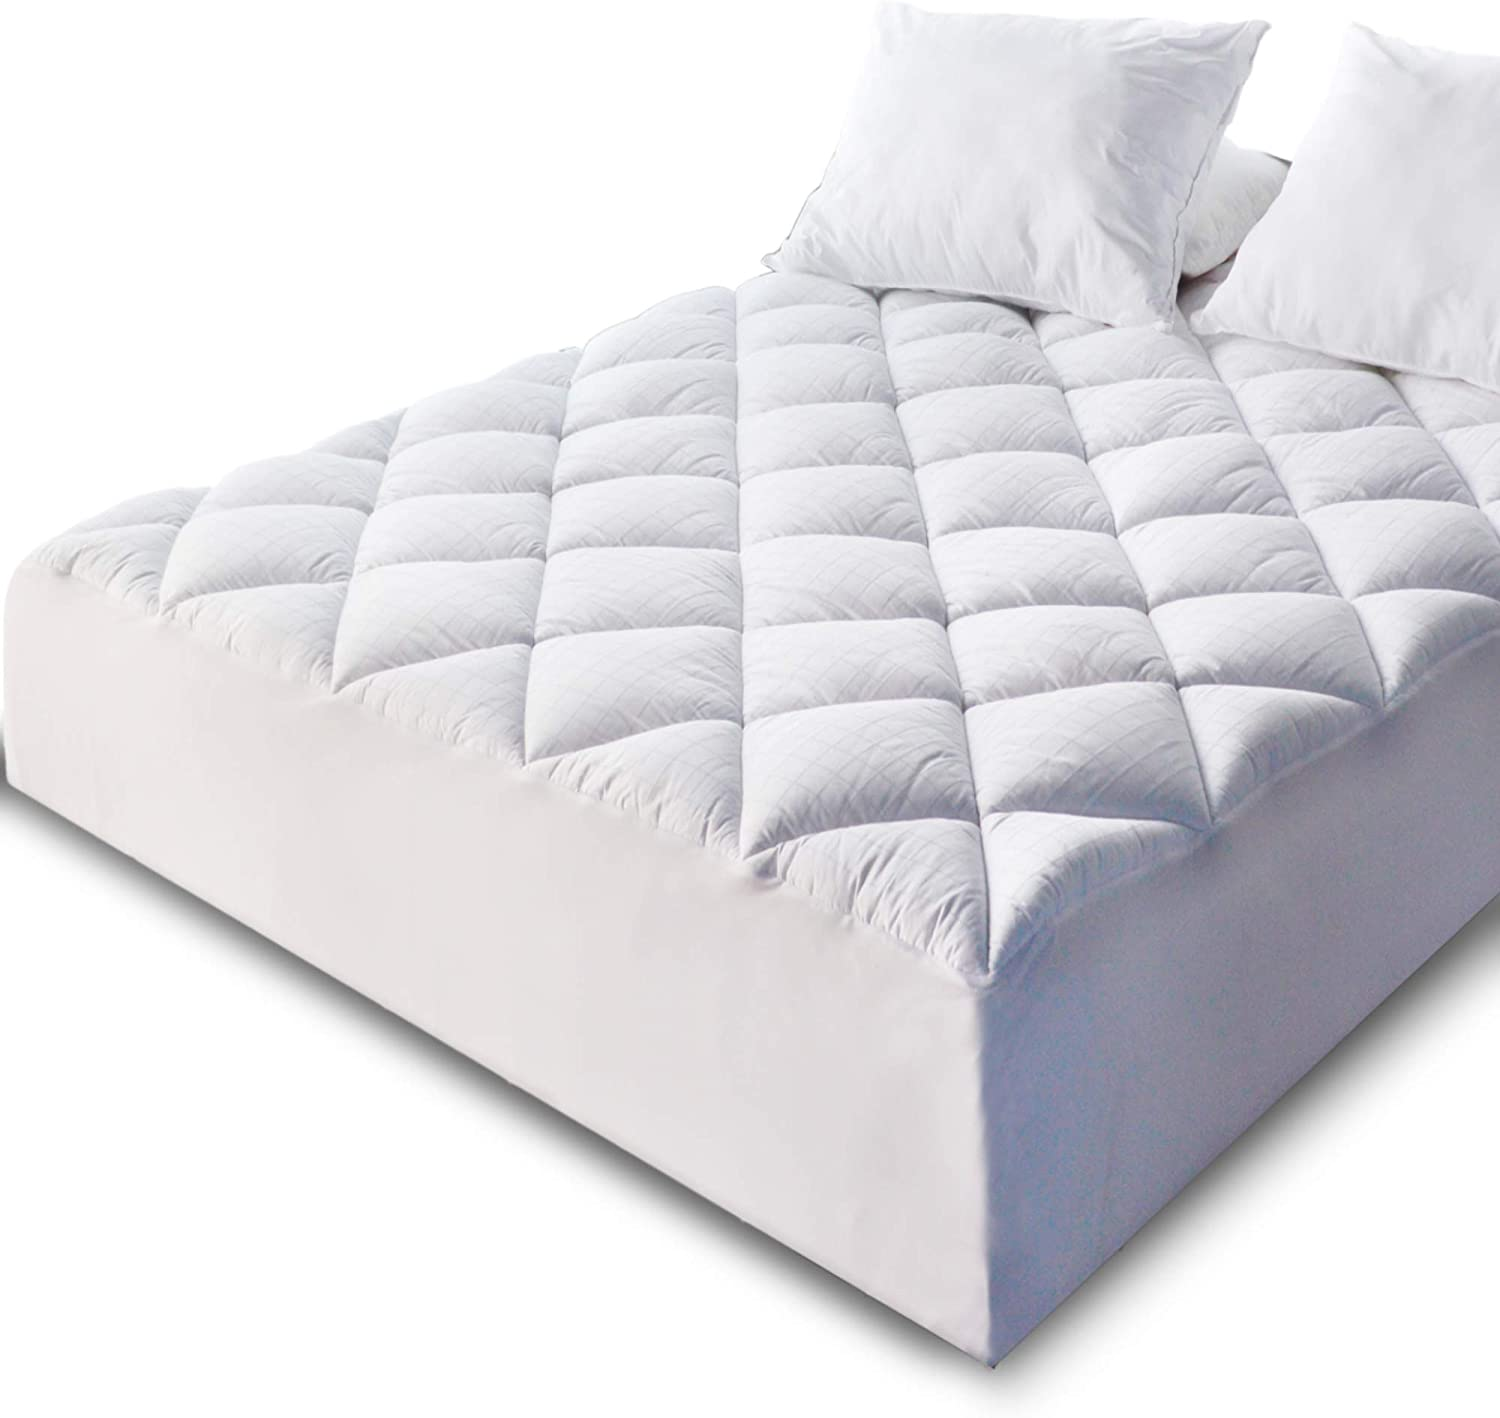 KASENTEX Quilted Fitted Mattress Pad & Protector with 18 Inches Deep Pockets, 300 TC Cotton Jacquard Fabric Front & Down Alternative Fill, Cozy & Ultra Soft – Hypoallergenic, Twin XL 39x80in.